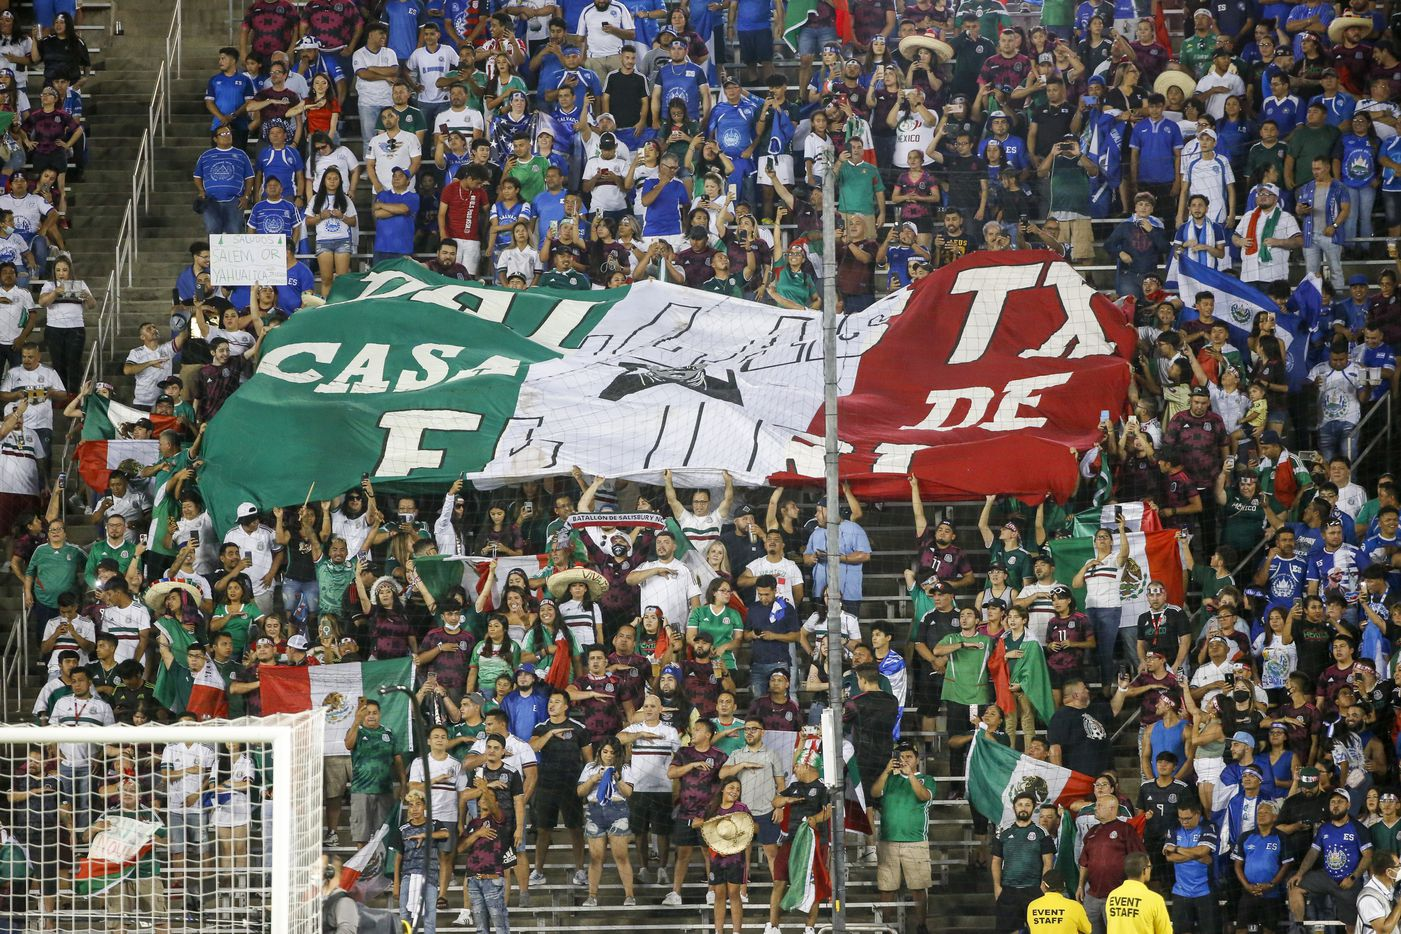 Fans of Mexico wave a large banner during the national anthem of Mexico before a CONCACAF Gold Cup Group A soccer match against El Salvador at the Cotton Bowl on Sunday, July 18, 2021, in Dallas. (Elias Valverde II/The Dallas Morning News)